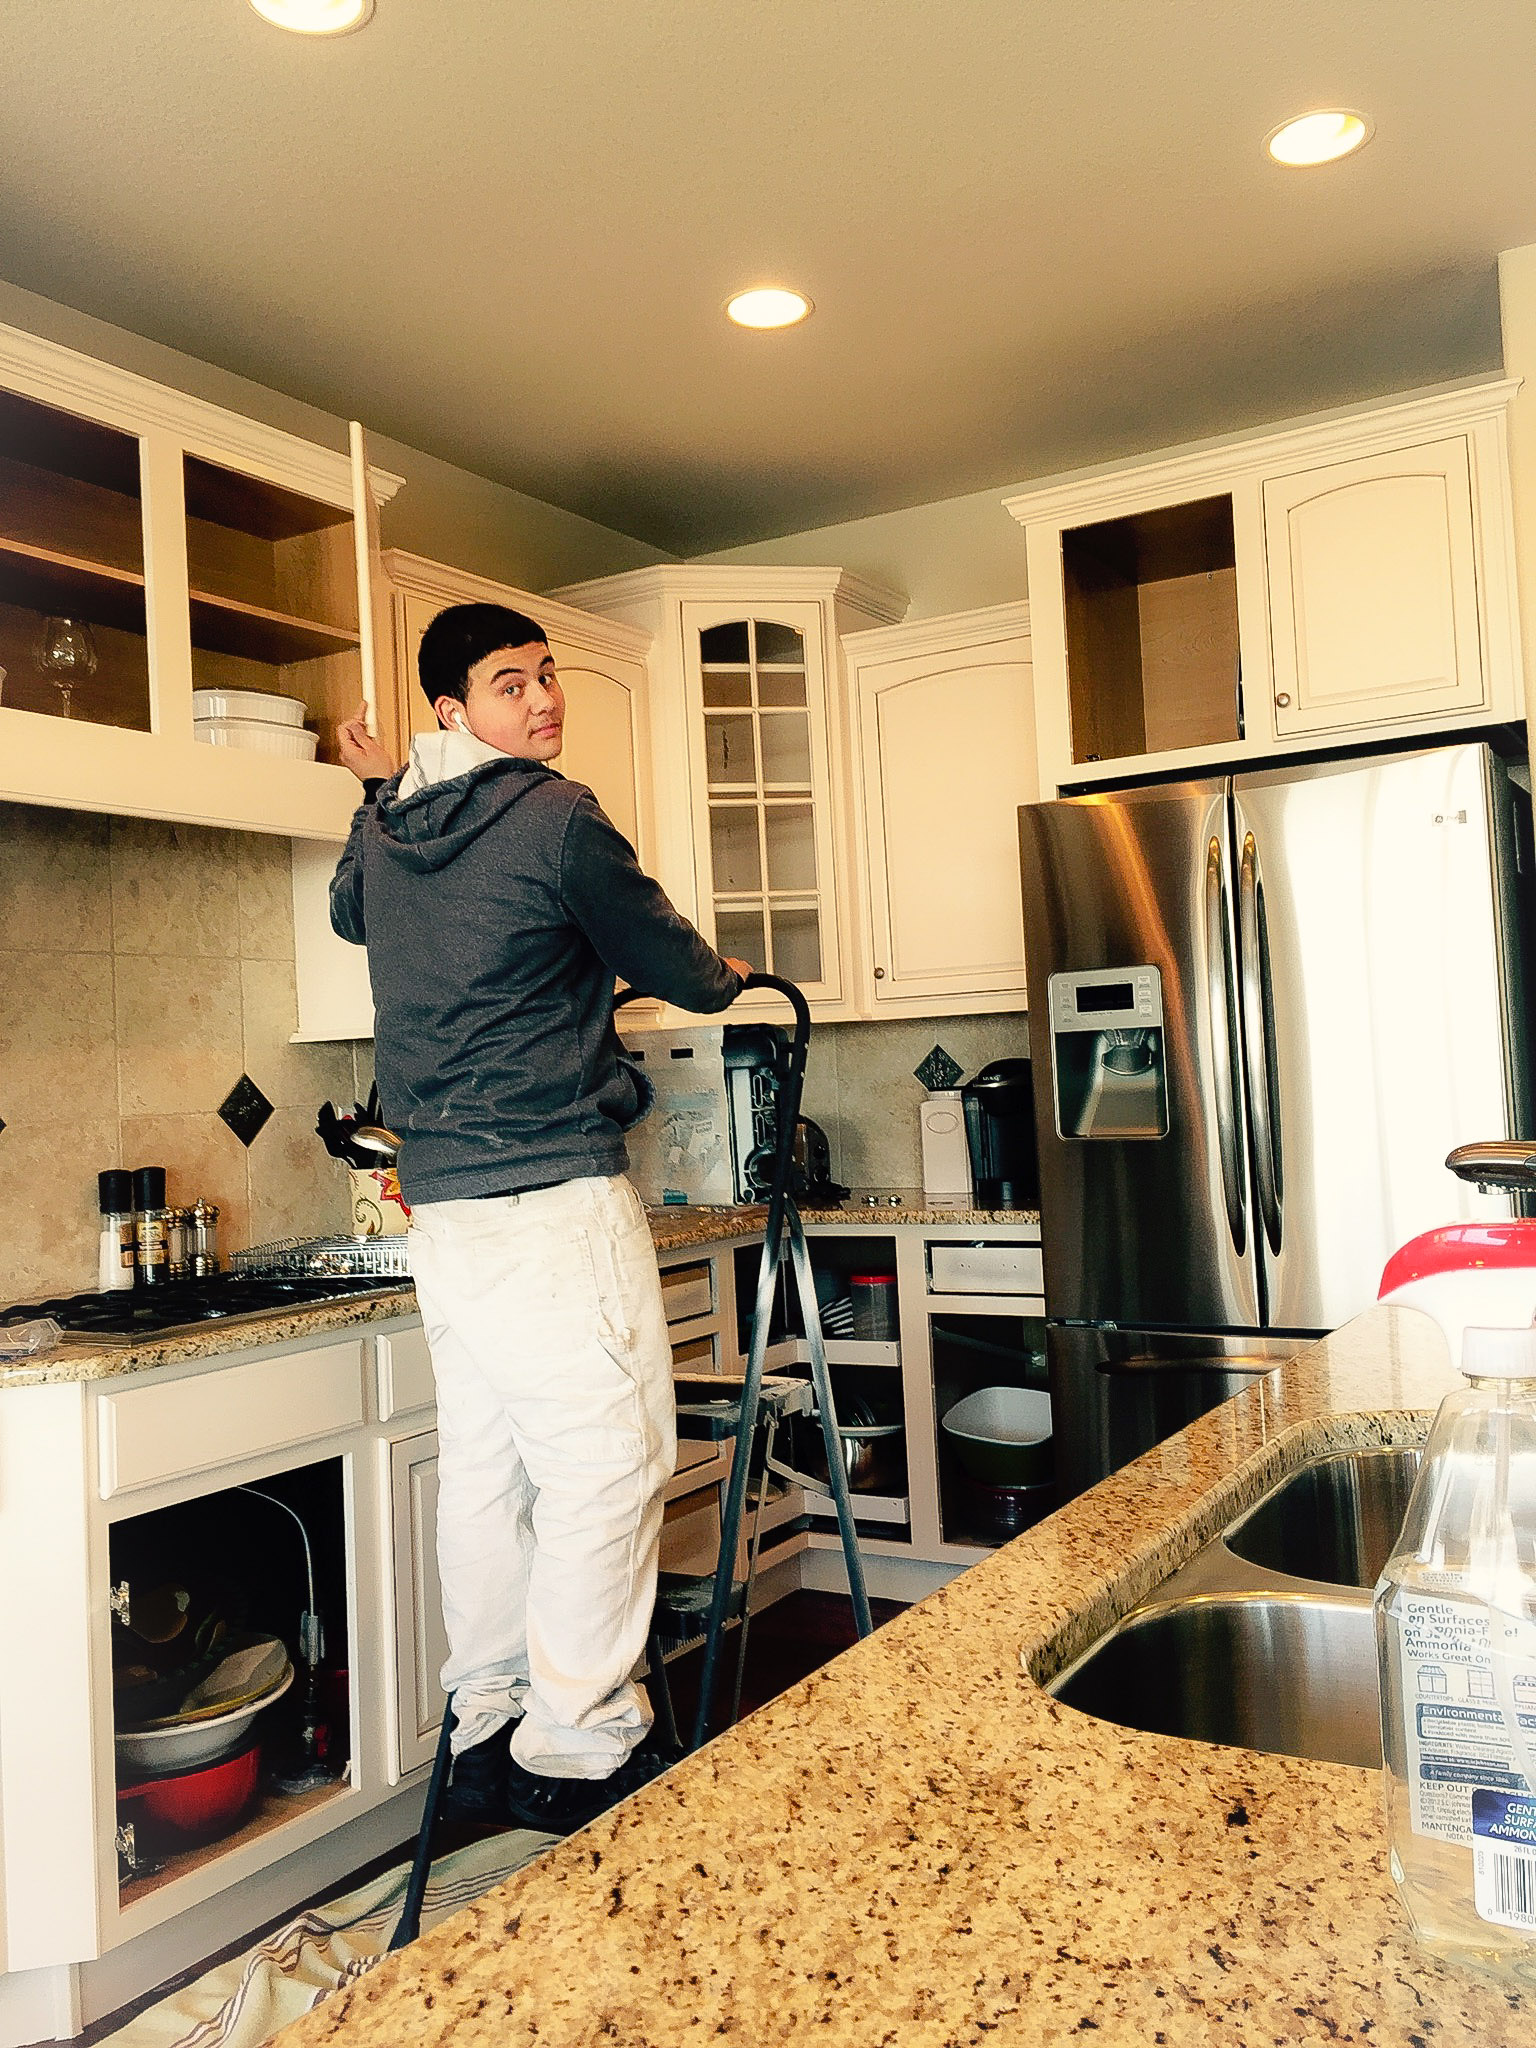 Cabinet Refinishing Denver - Cabinets Refinishing and Cabinet ...